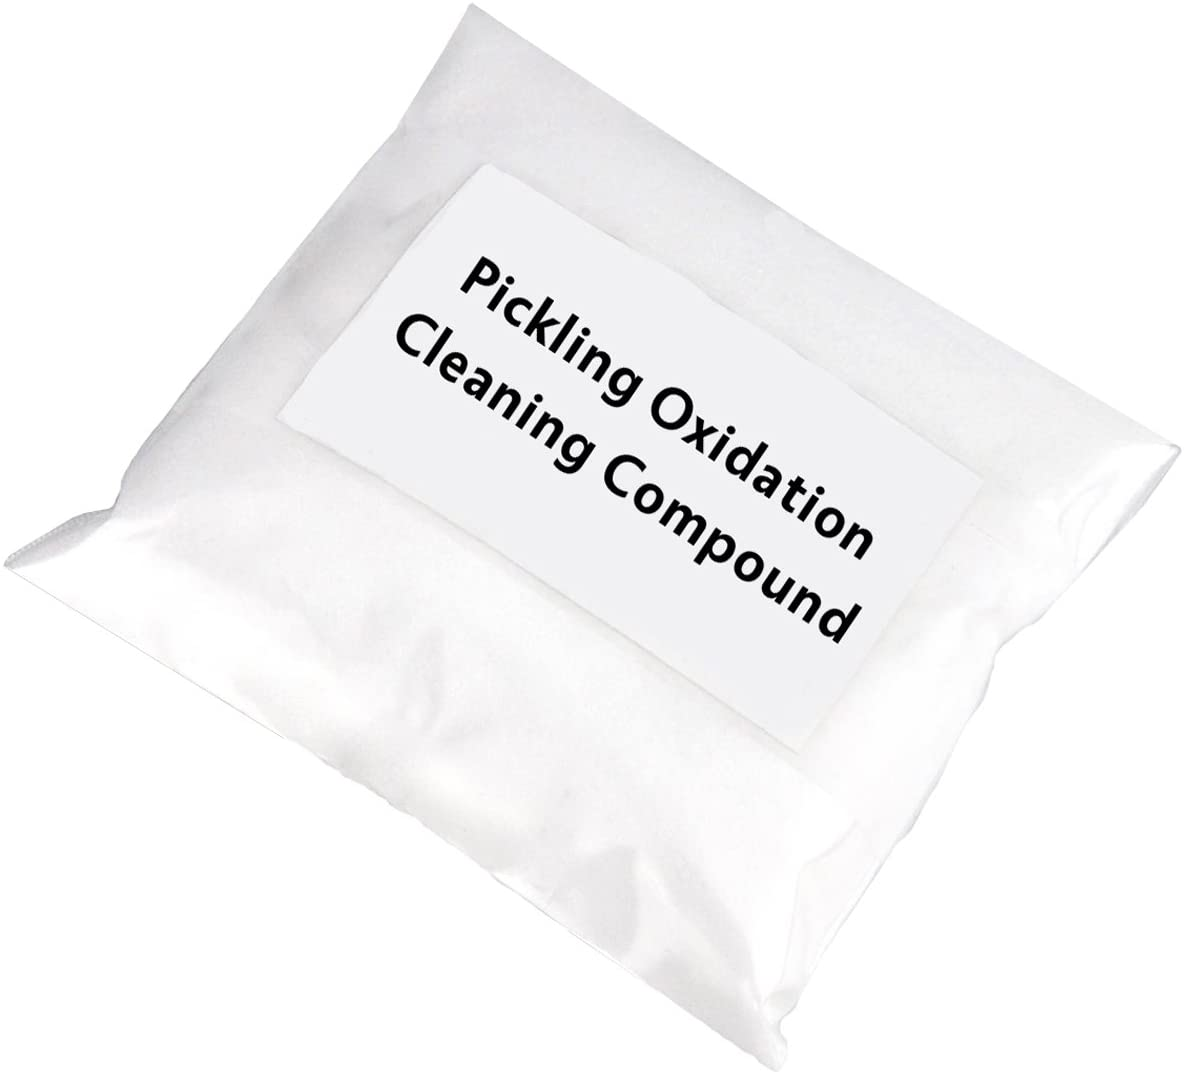 2 LB 32 oz Pickle Pickling Powder Deoxidizing Flux Cleaning Compound for Gold Silver Copper Brass Jewelry Cleaner